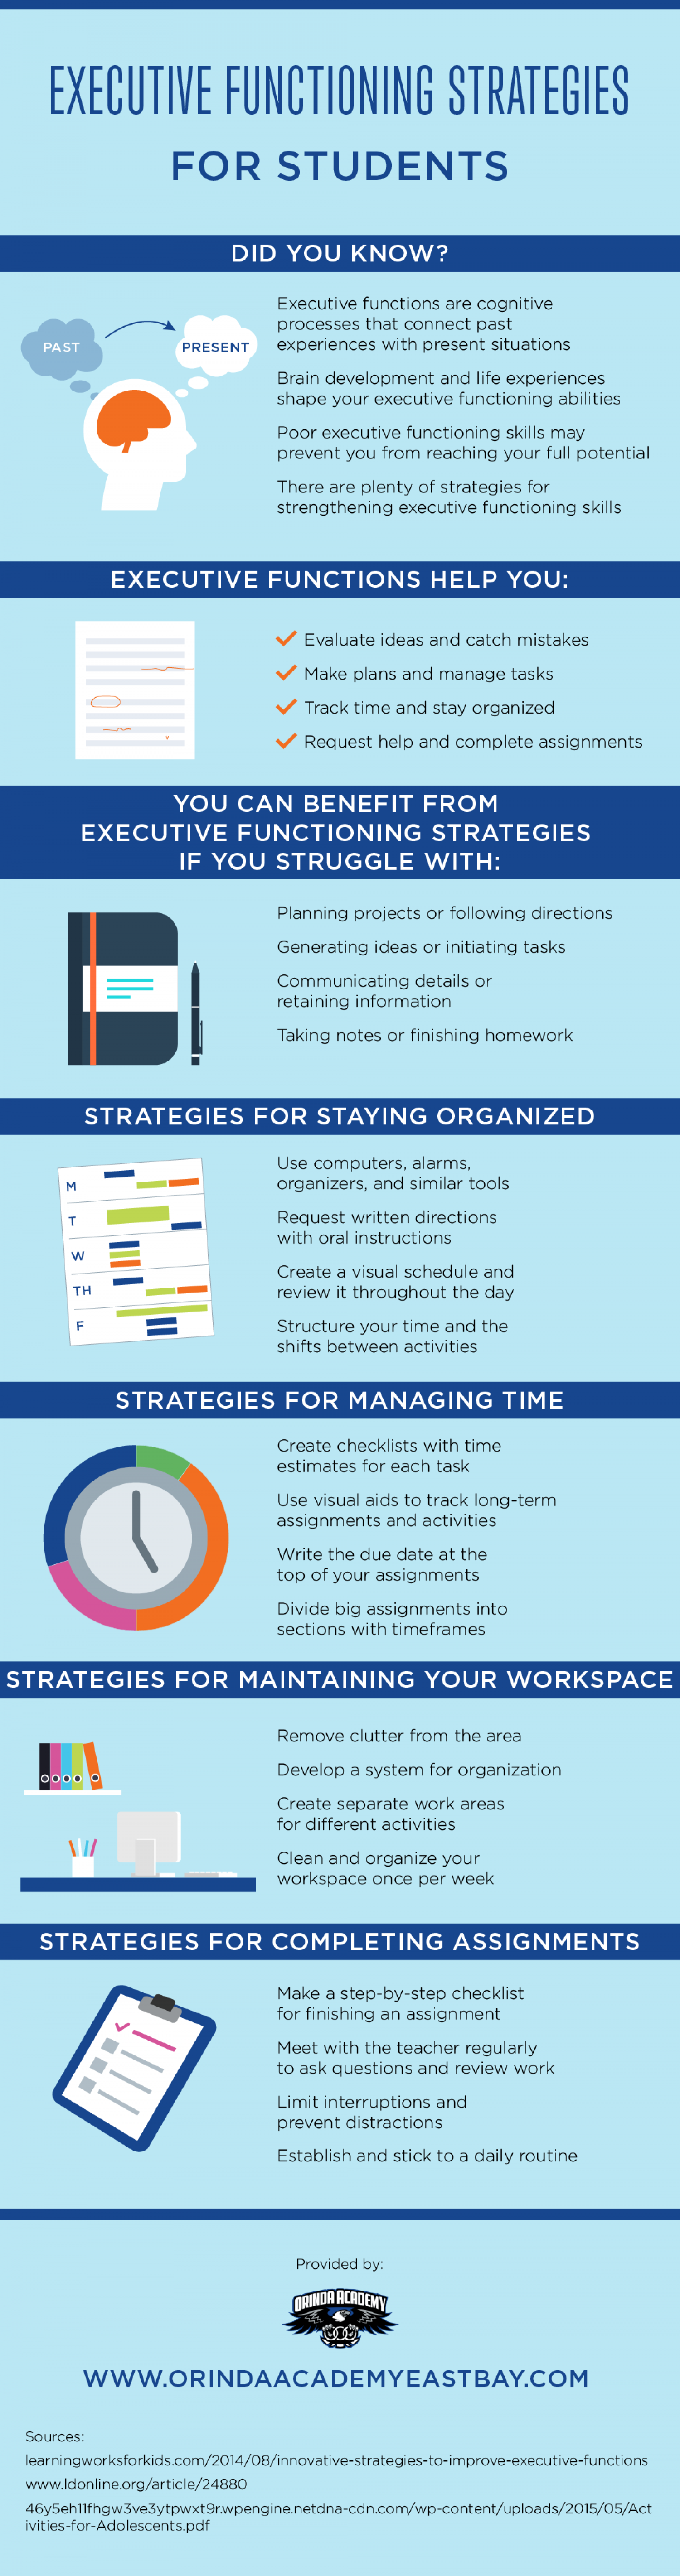 Executive Functioning Strategies for Students Infographic